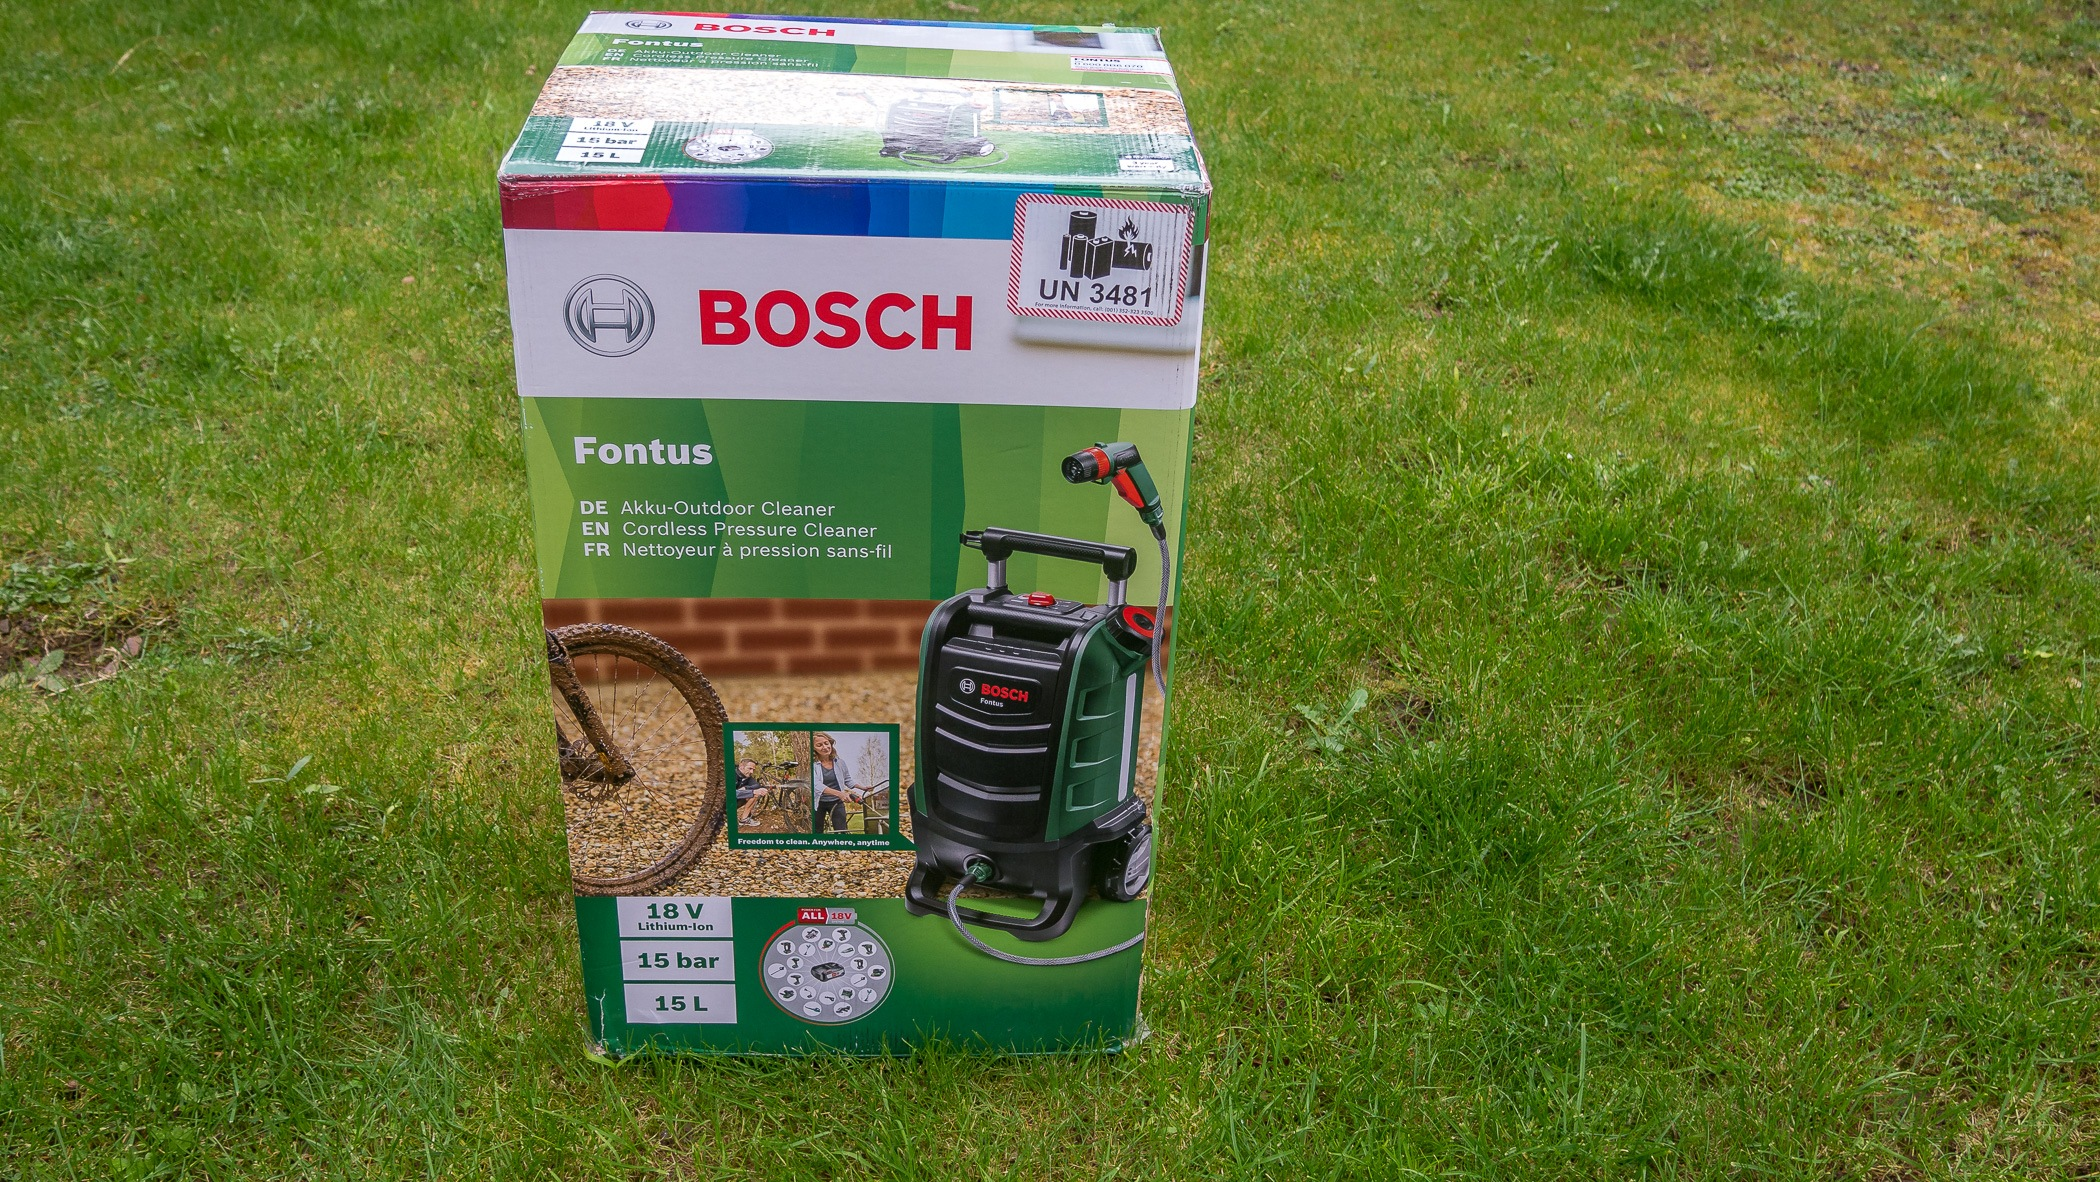 The Bosch Fontus in the box